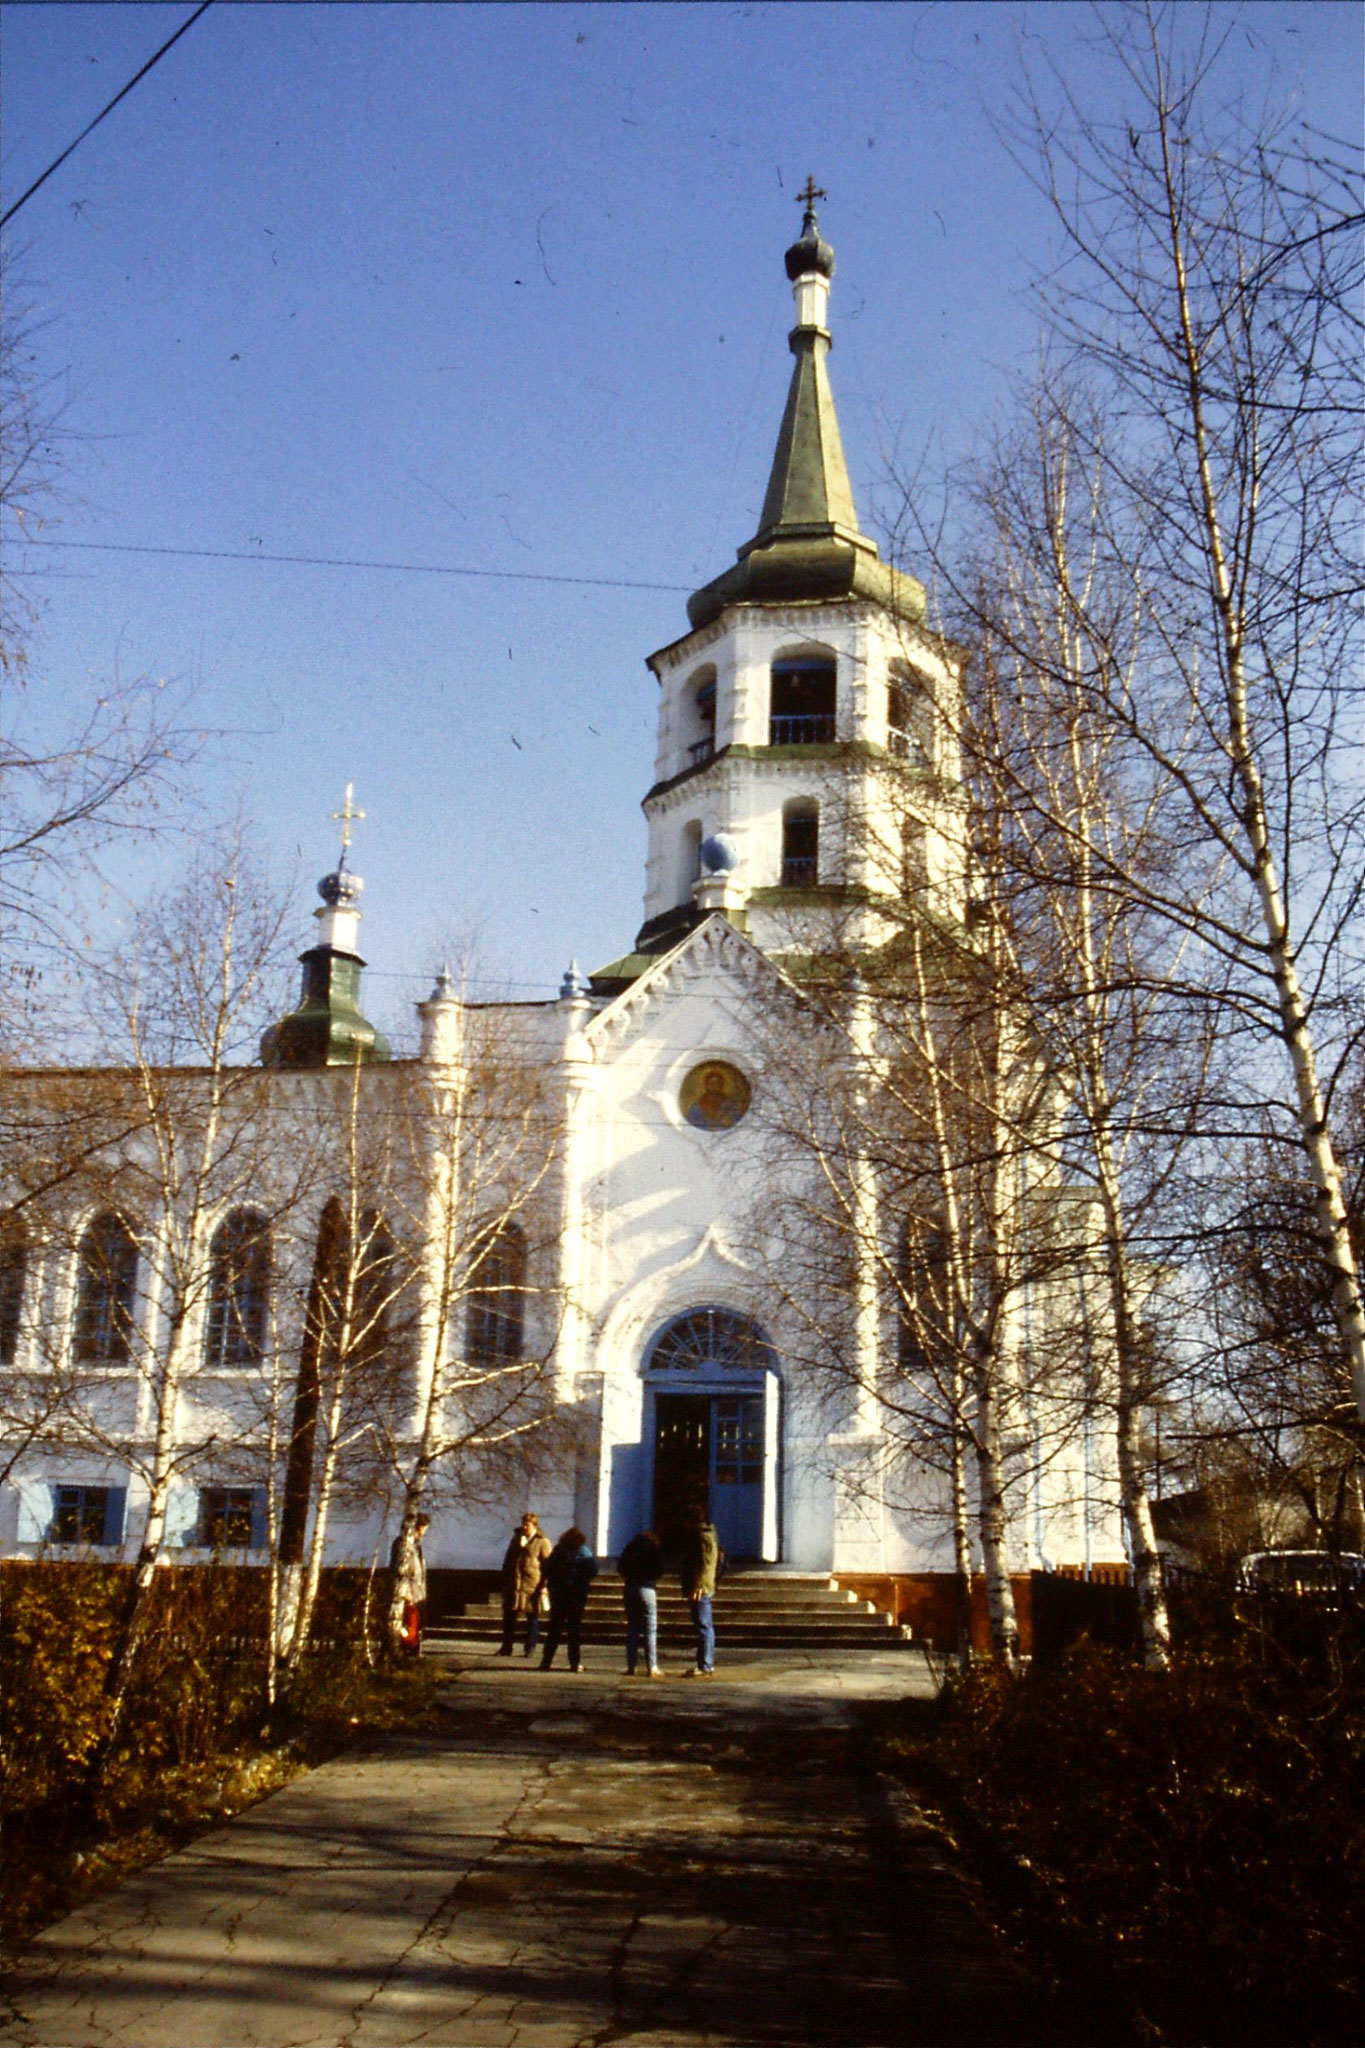 24/10/1988: 2: Irkutsk, church 1758